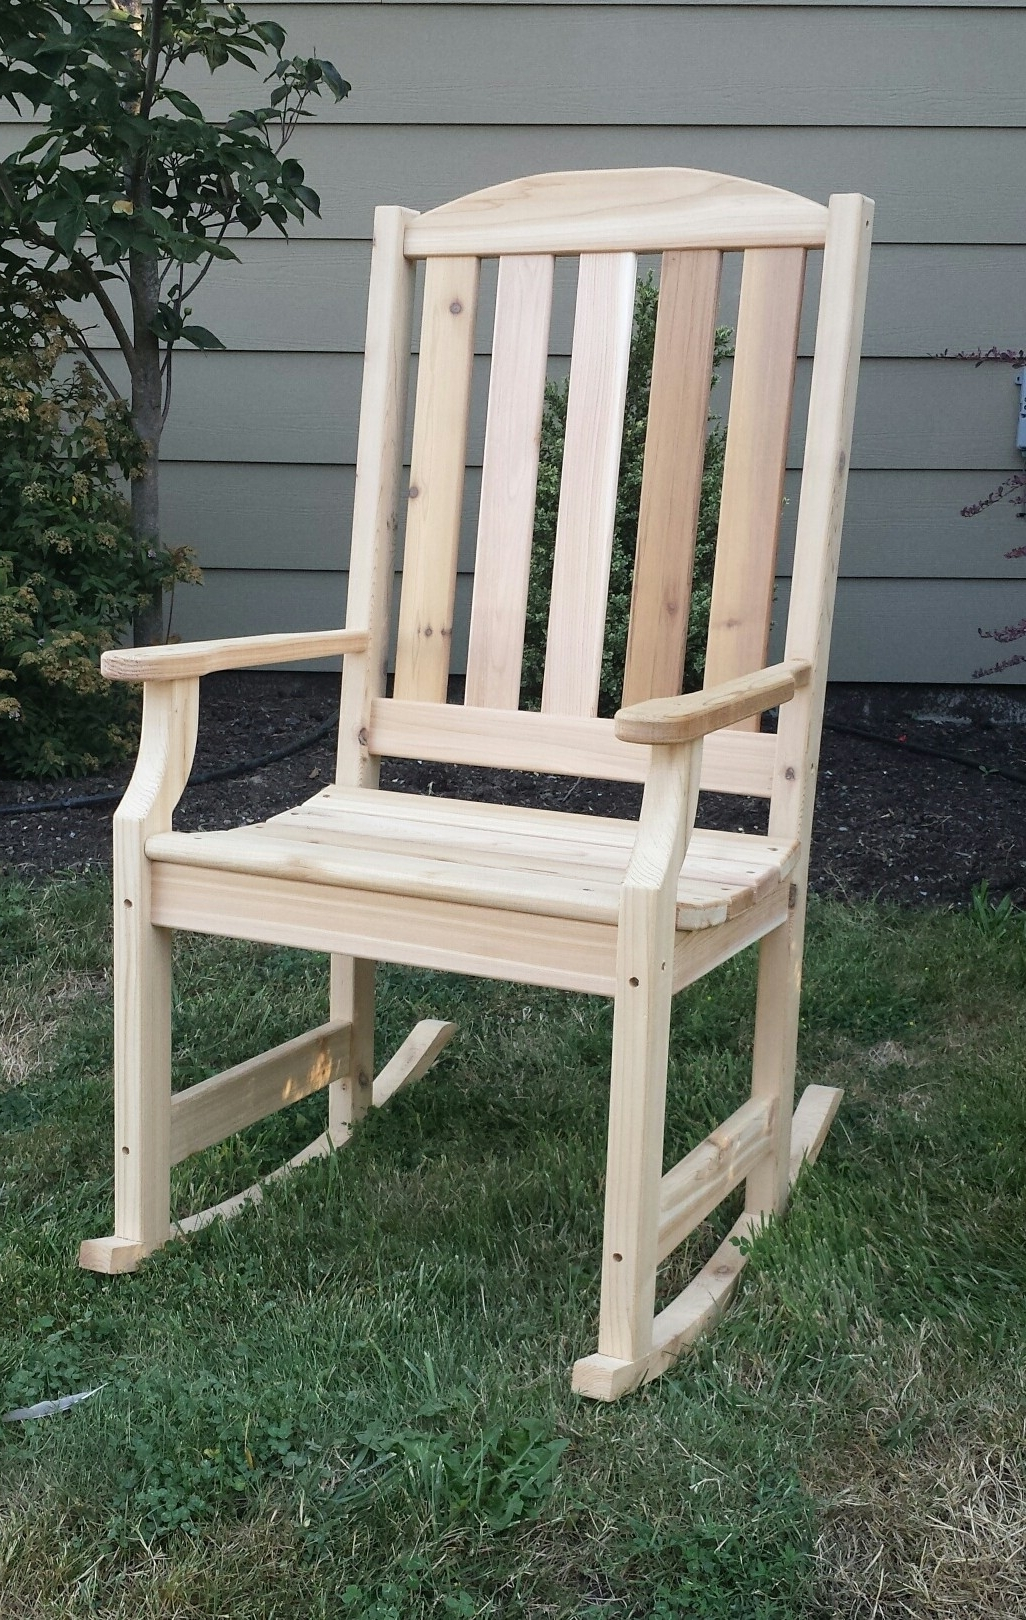 Patio Furniture Rocking Chair Painted Adirondack Chairs (View 9 of 15)